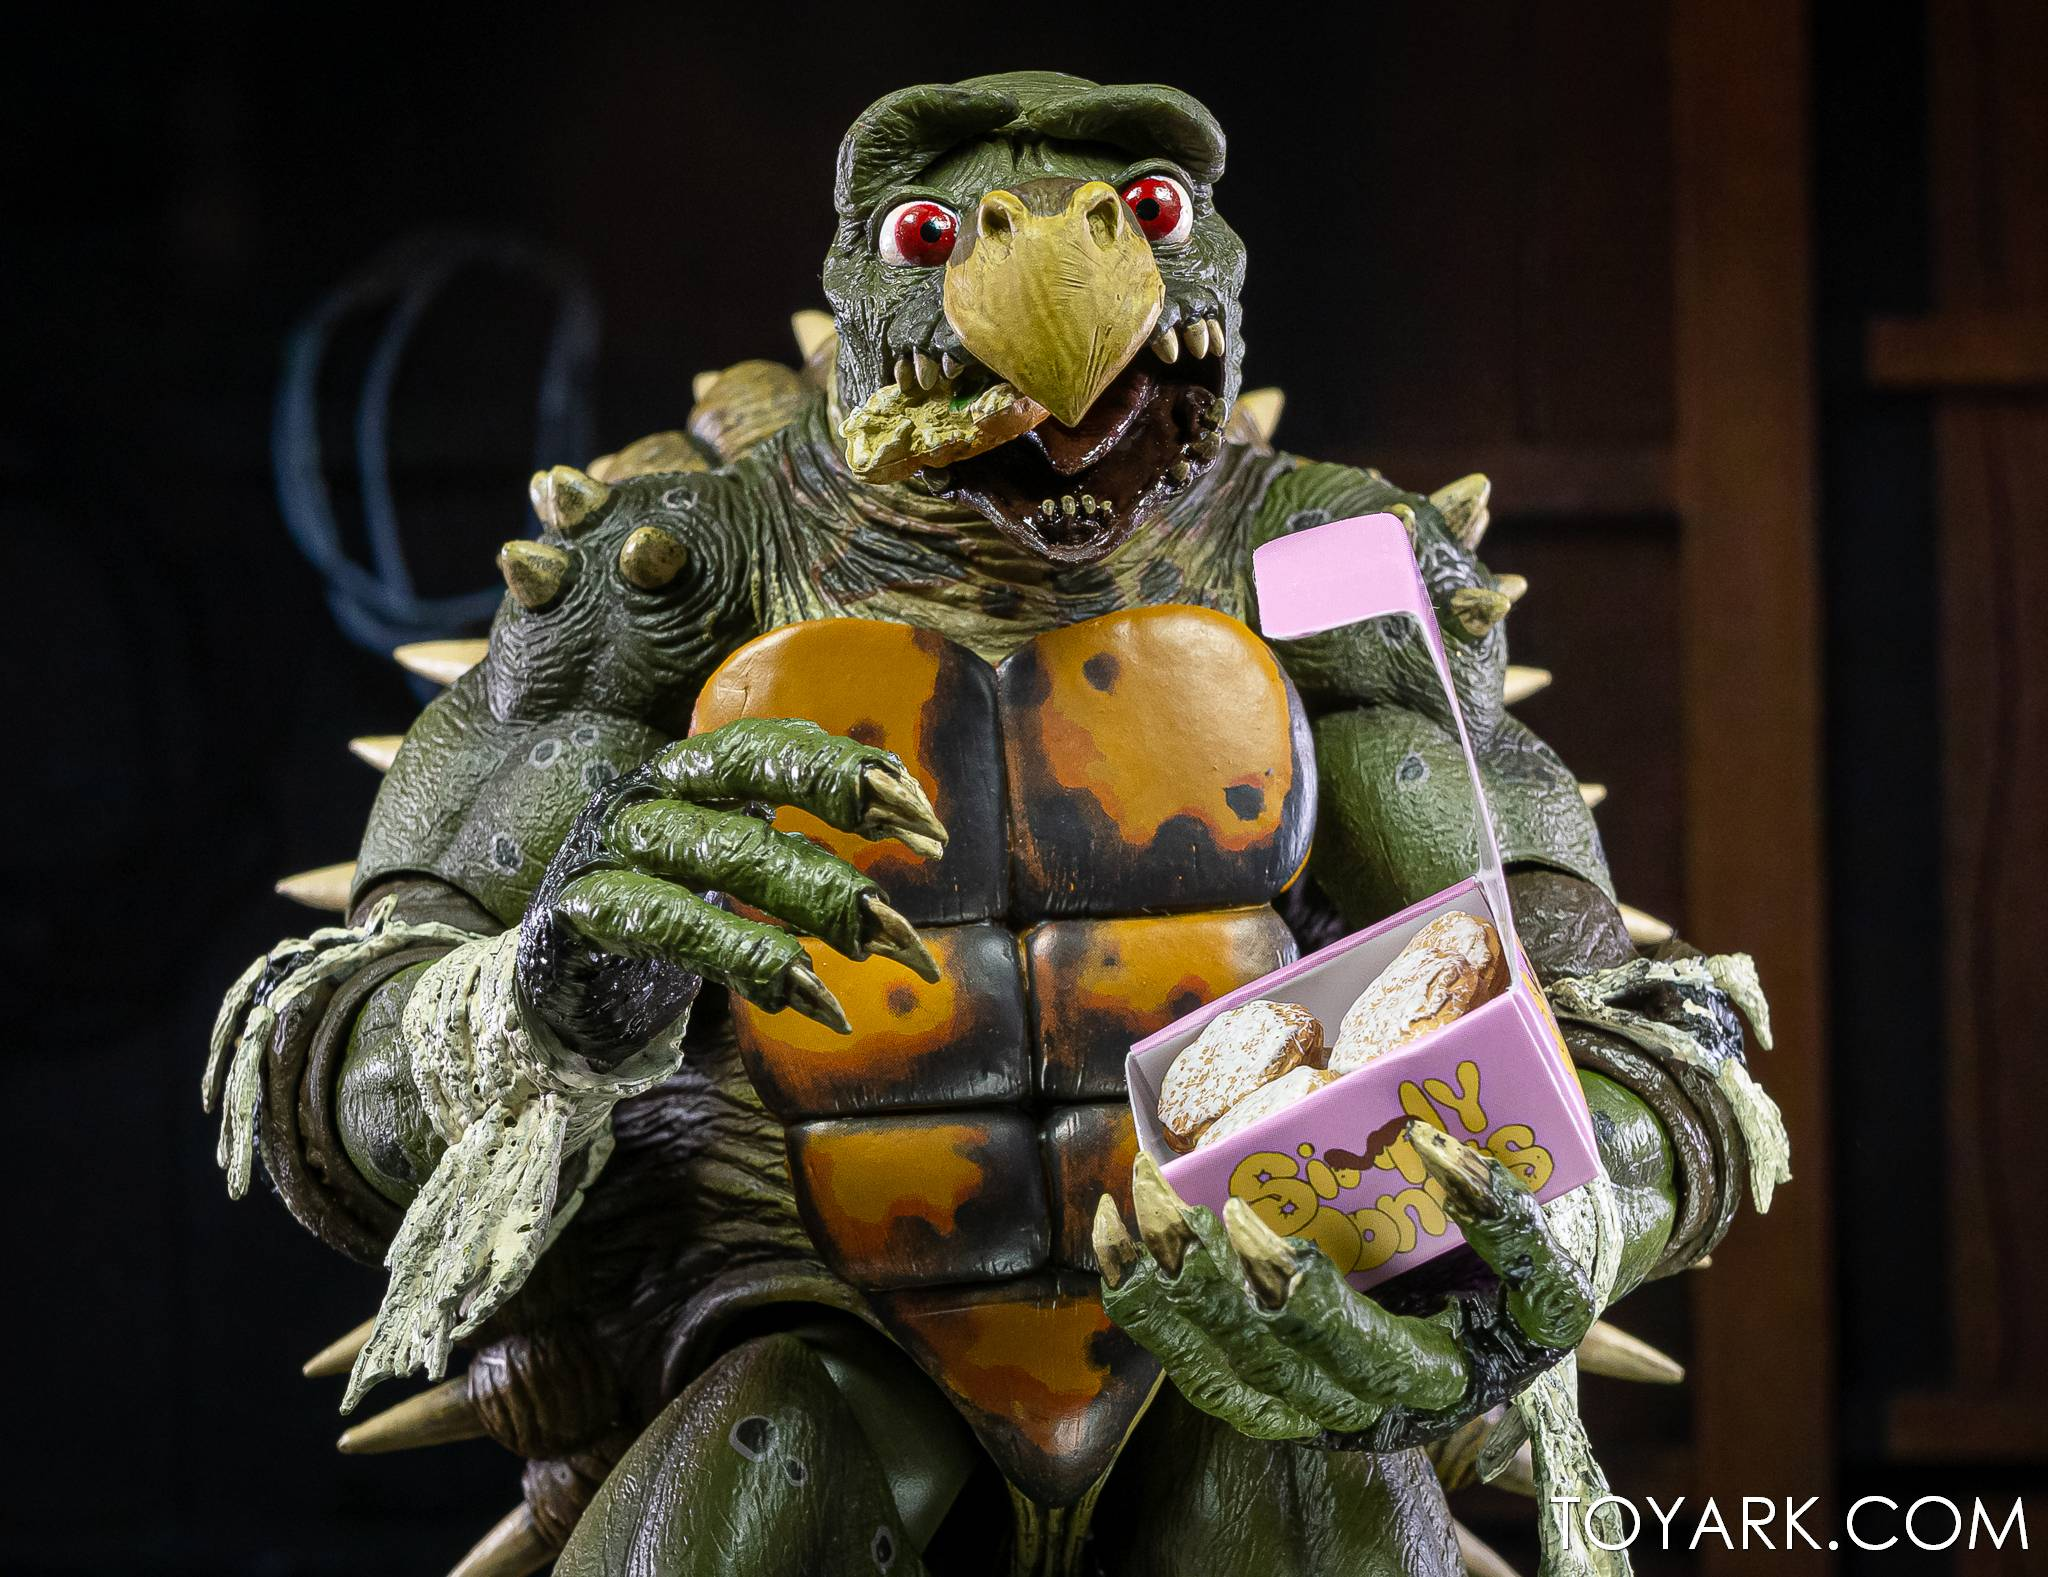 https://news.toyark.com/wp-content/uploads/sites/4/2021/03/NECA-Tokka-and-Rahzar-TMNT-II-025.jpg